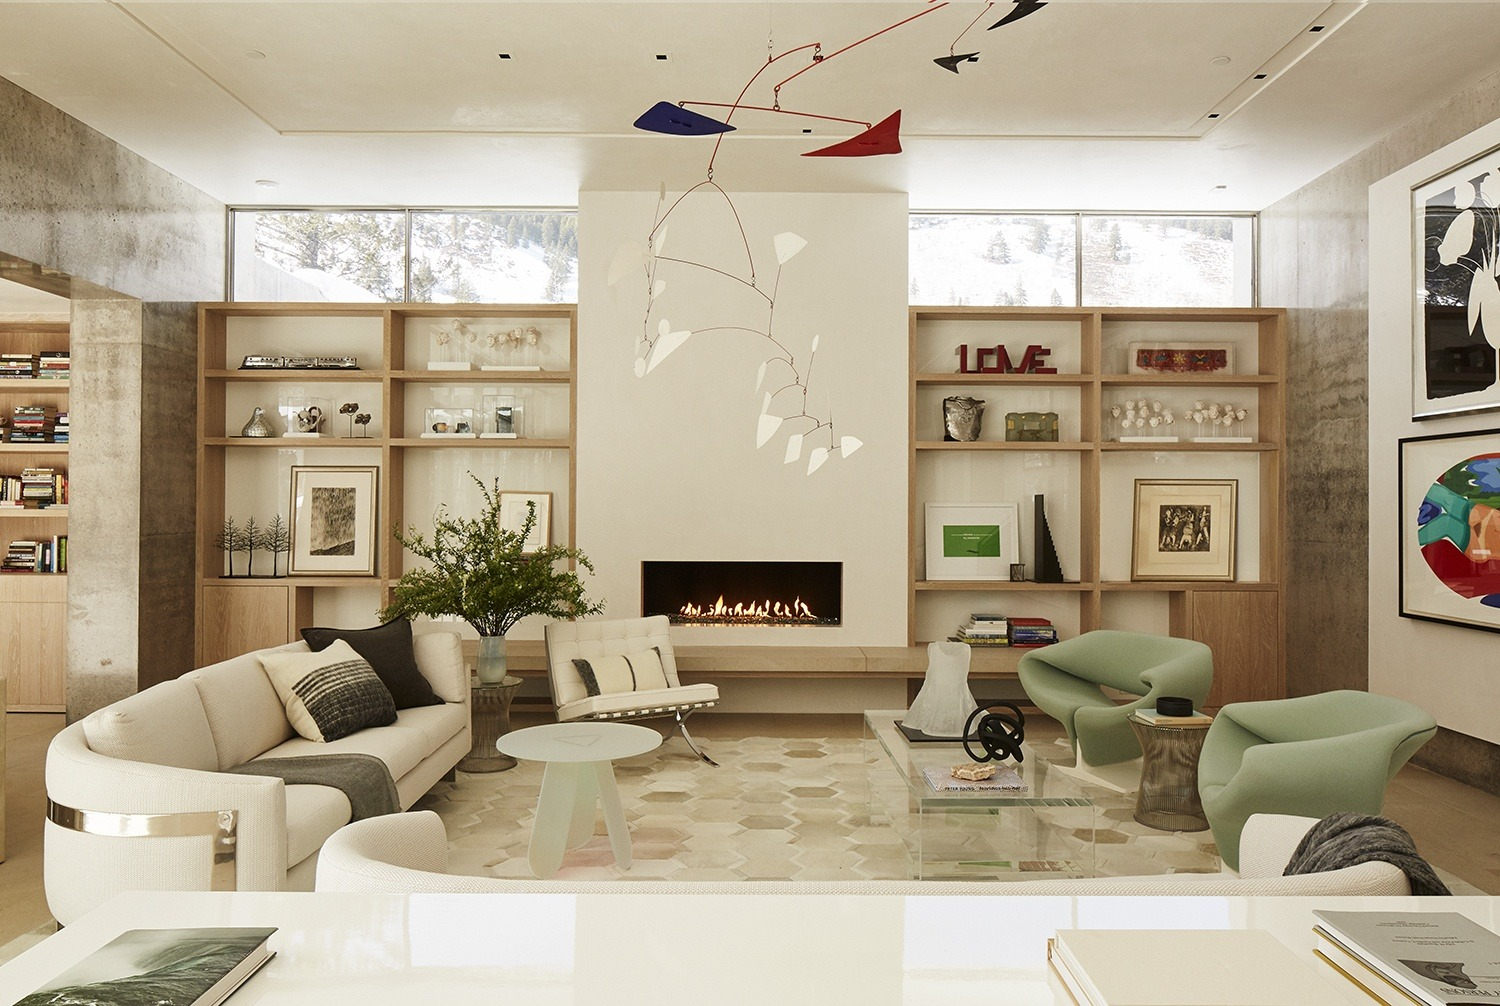 The living room in this Michael Imber-designed home was produced around a massive Alexander Calder mobile, while a floating wall was installed to display works by Donald Sultan and Tom Wesselmann from the homeowner's collection.